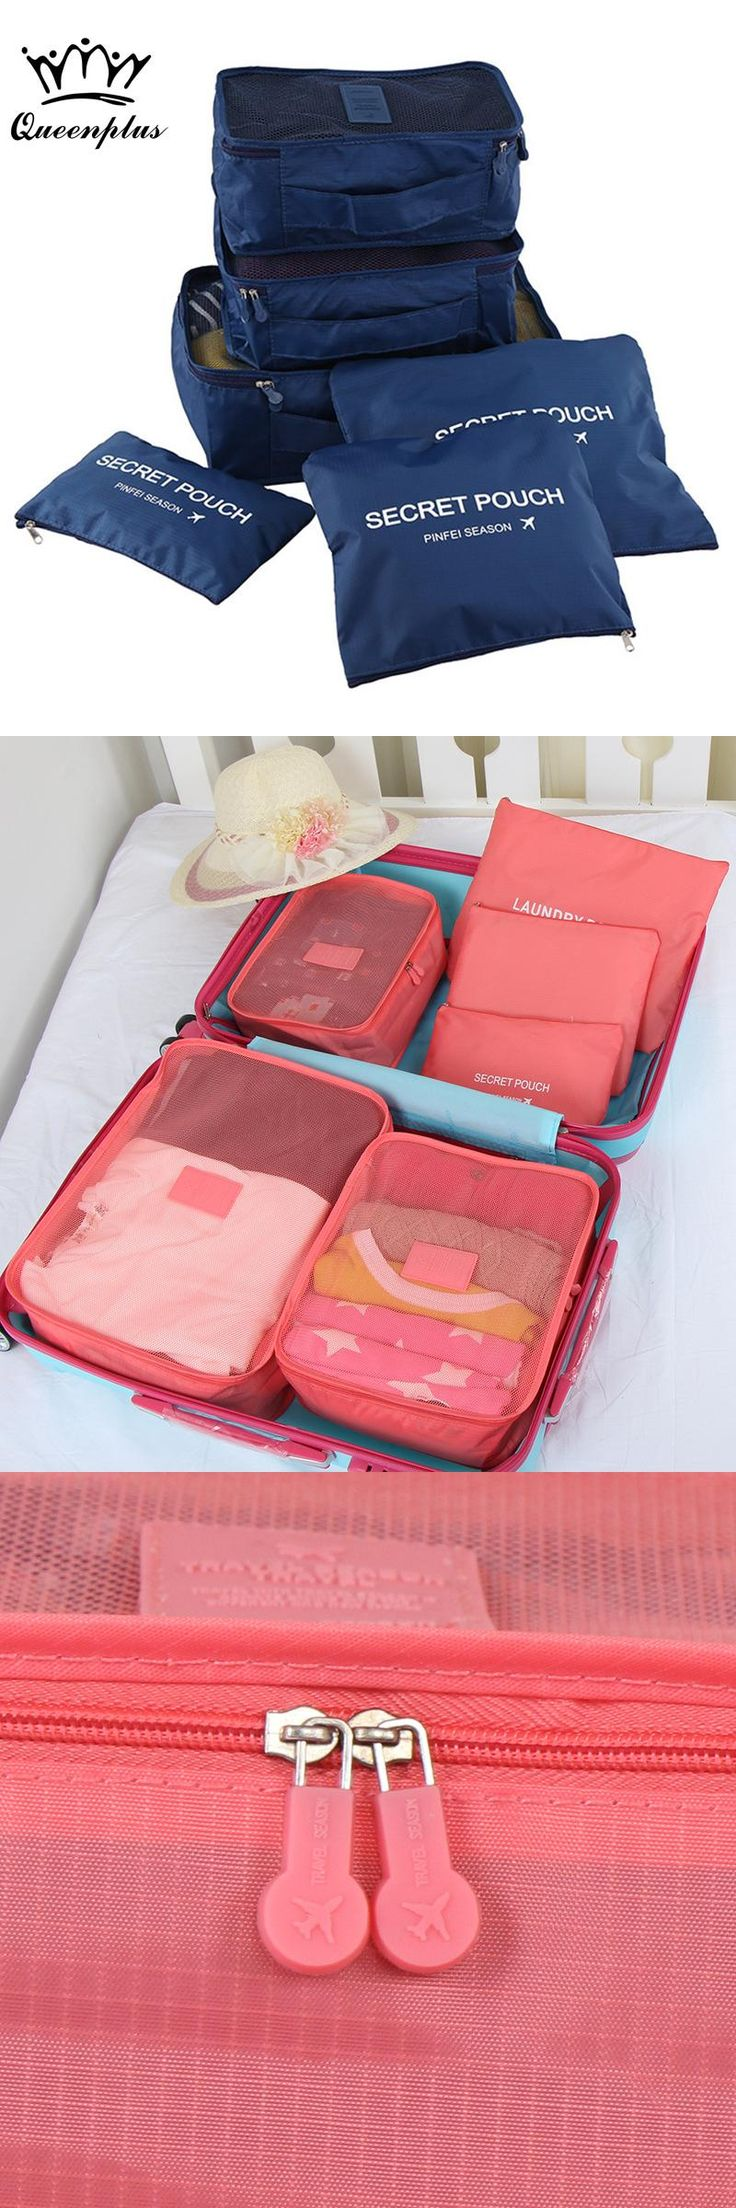 [Visit to Buy] 6pcs/set Fashion Double Zipper Waterproof Polyester Men and Women Luggage Travel Bags packing cubes #Advertisement